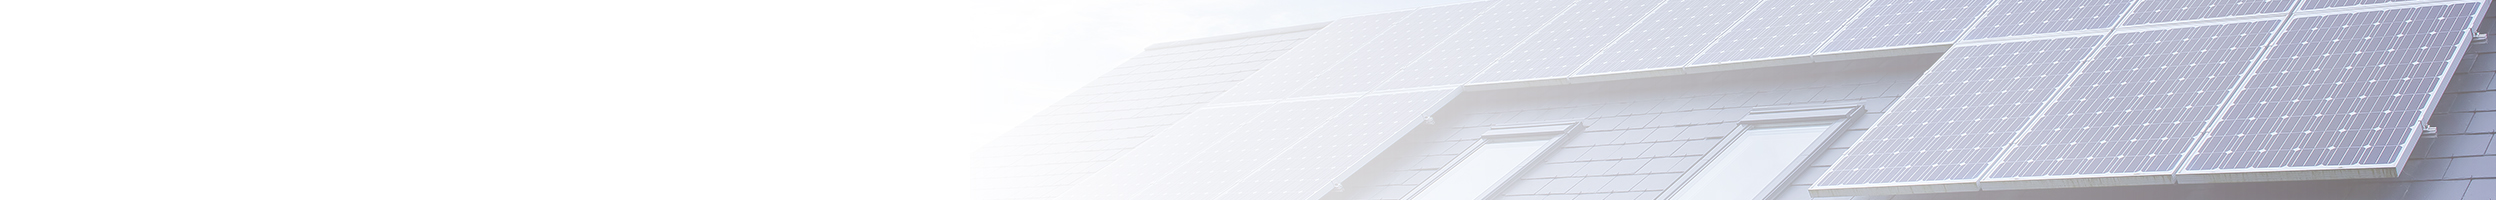 The hardest part of going solar is deciding which finance path to take.